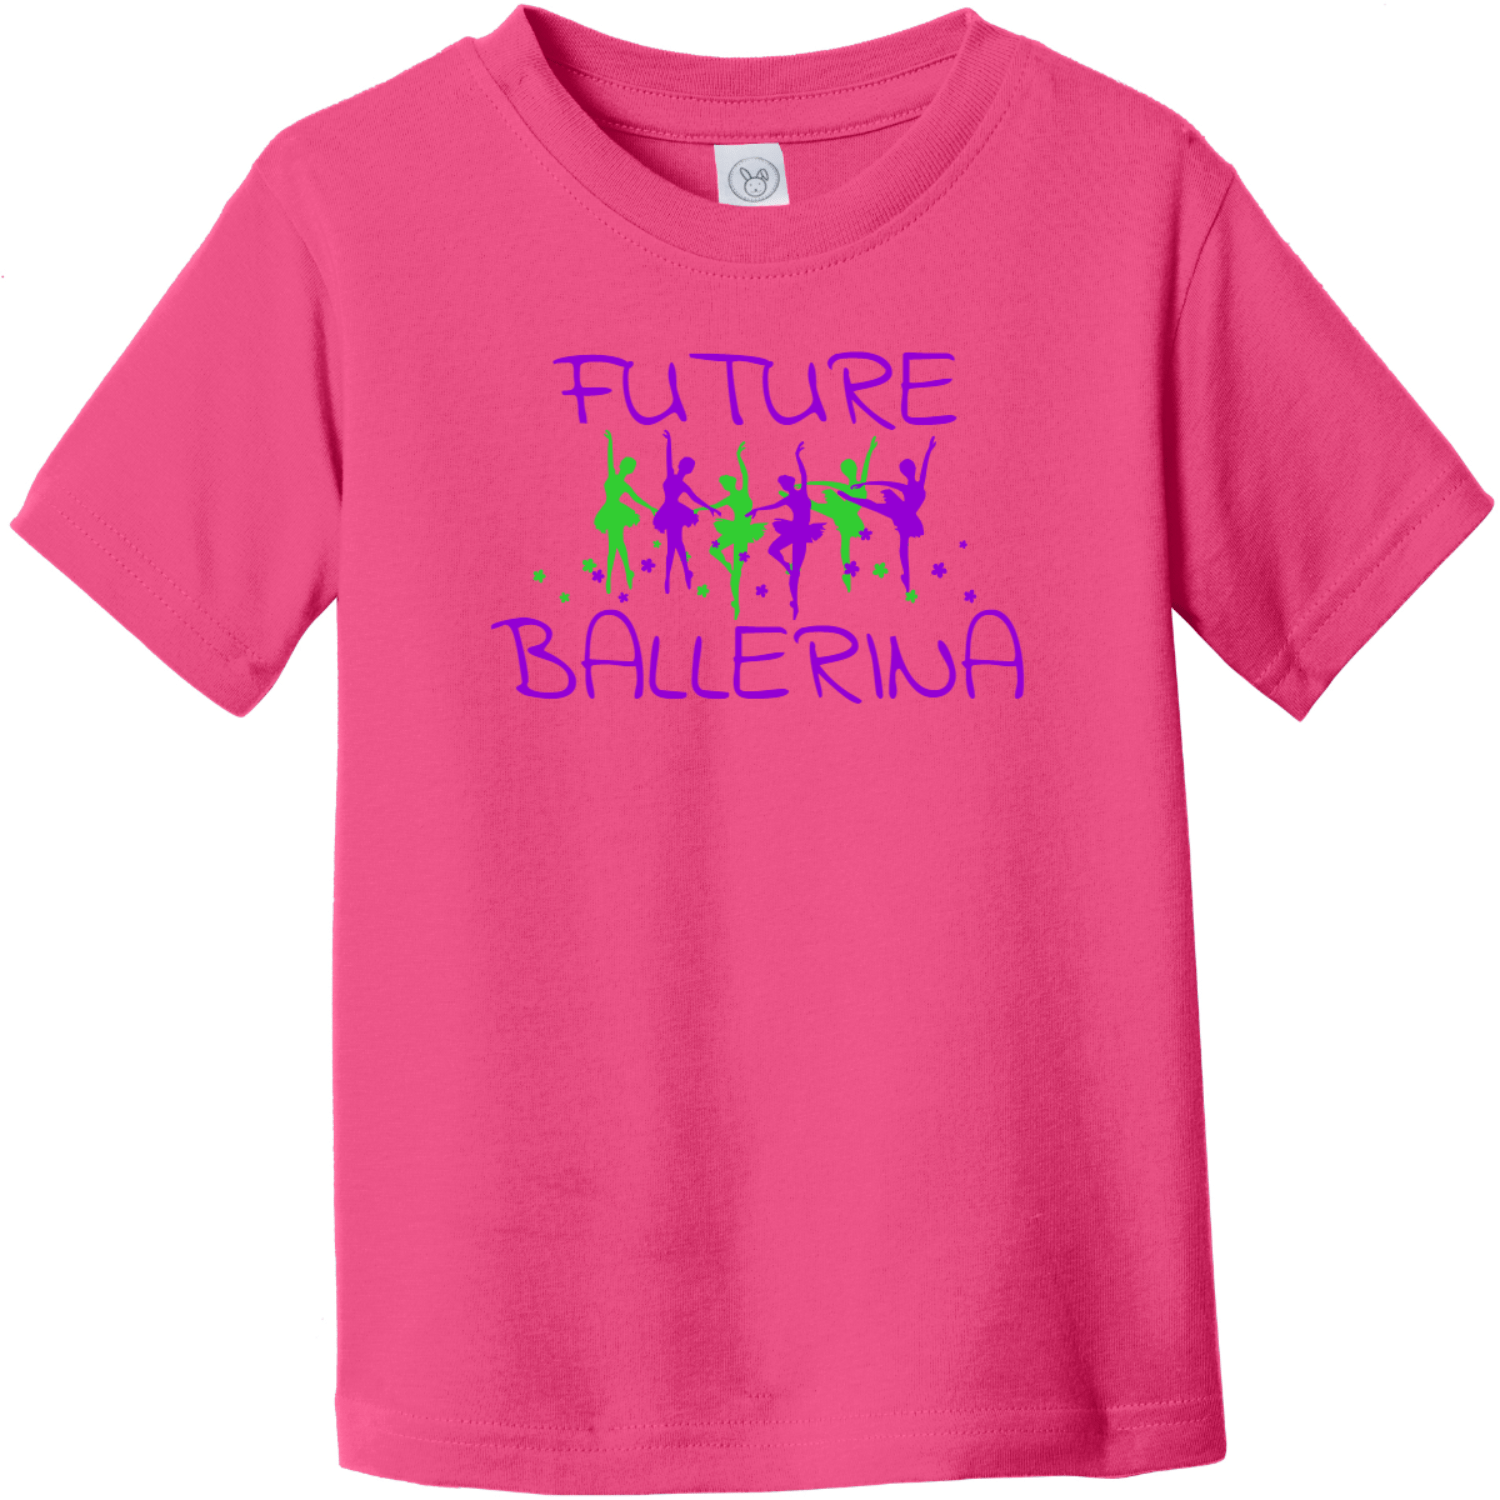 Future Ballerina Toddler T-Shirt Hot Pink Rabbit Skins Toddler Fine Jersey Tee RS3321